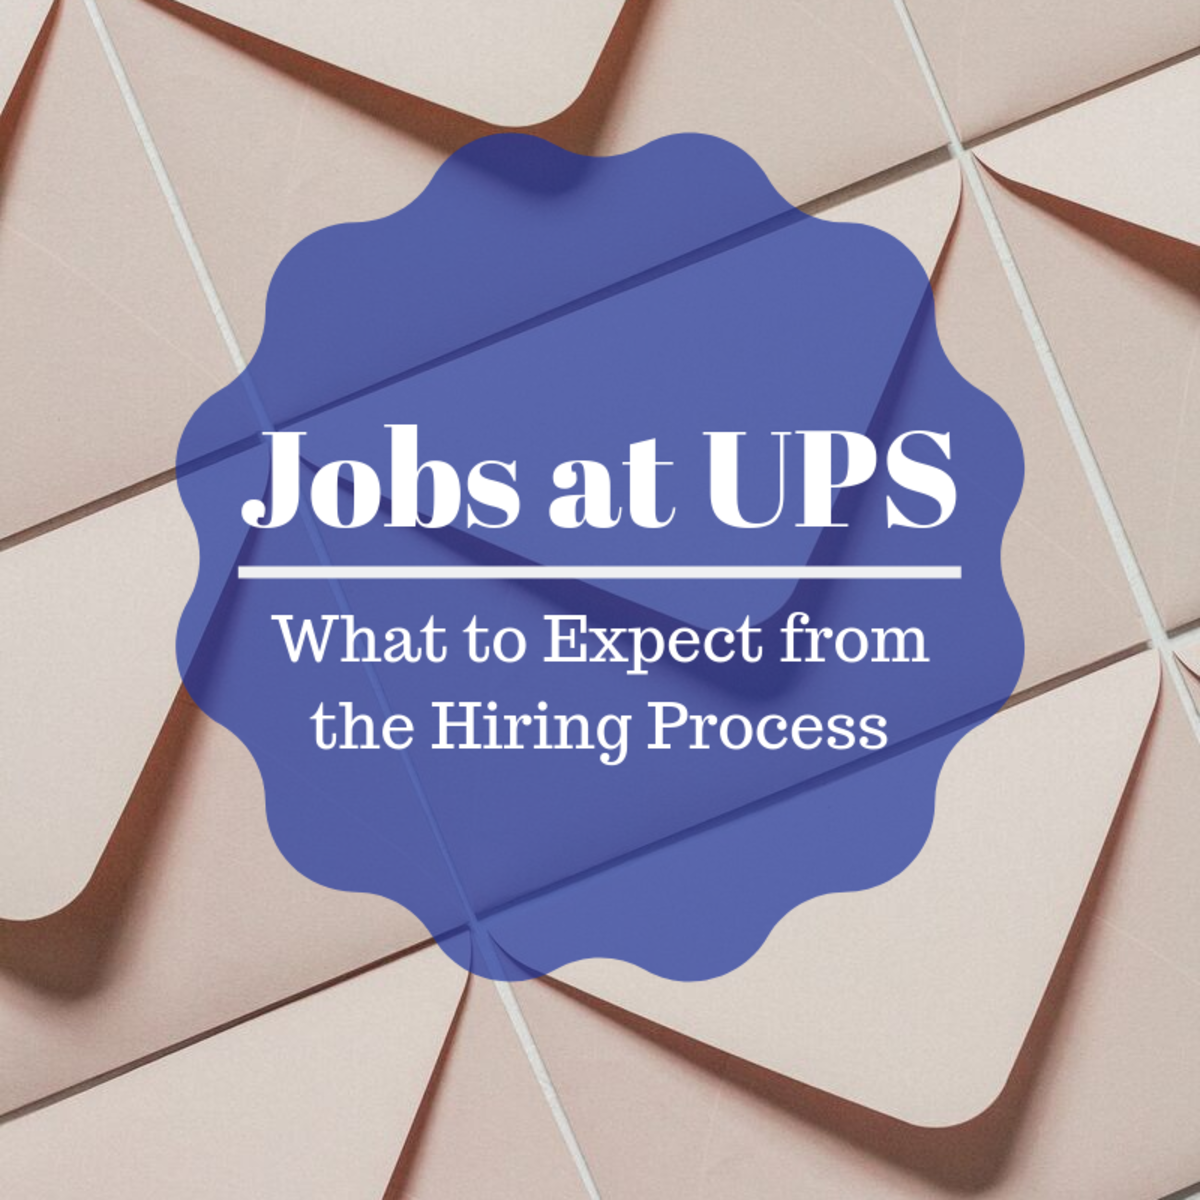 The Hiring Process at UPS: Application to Interview to Orientation